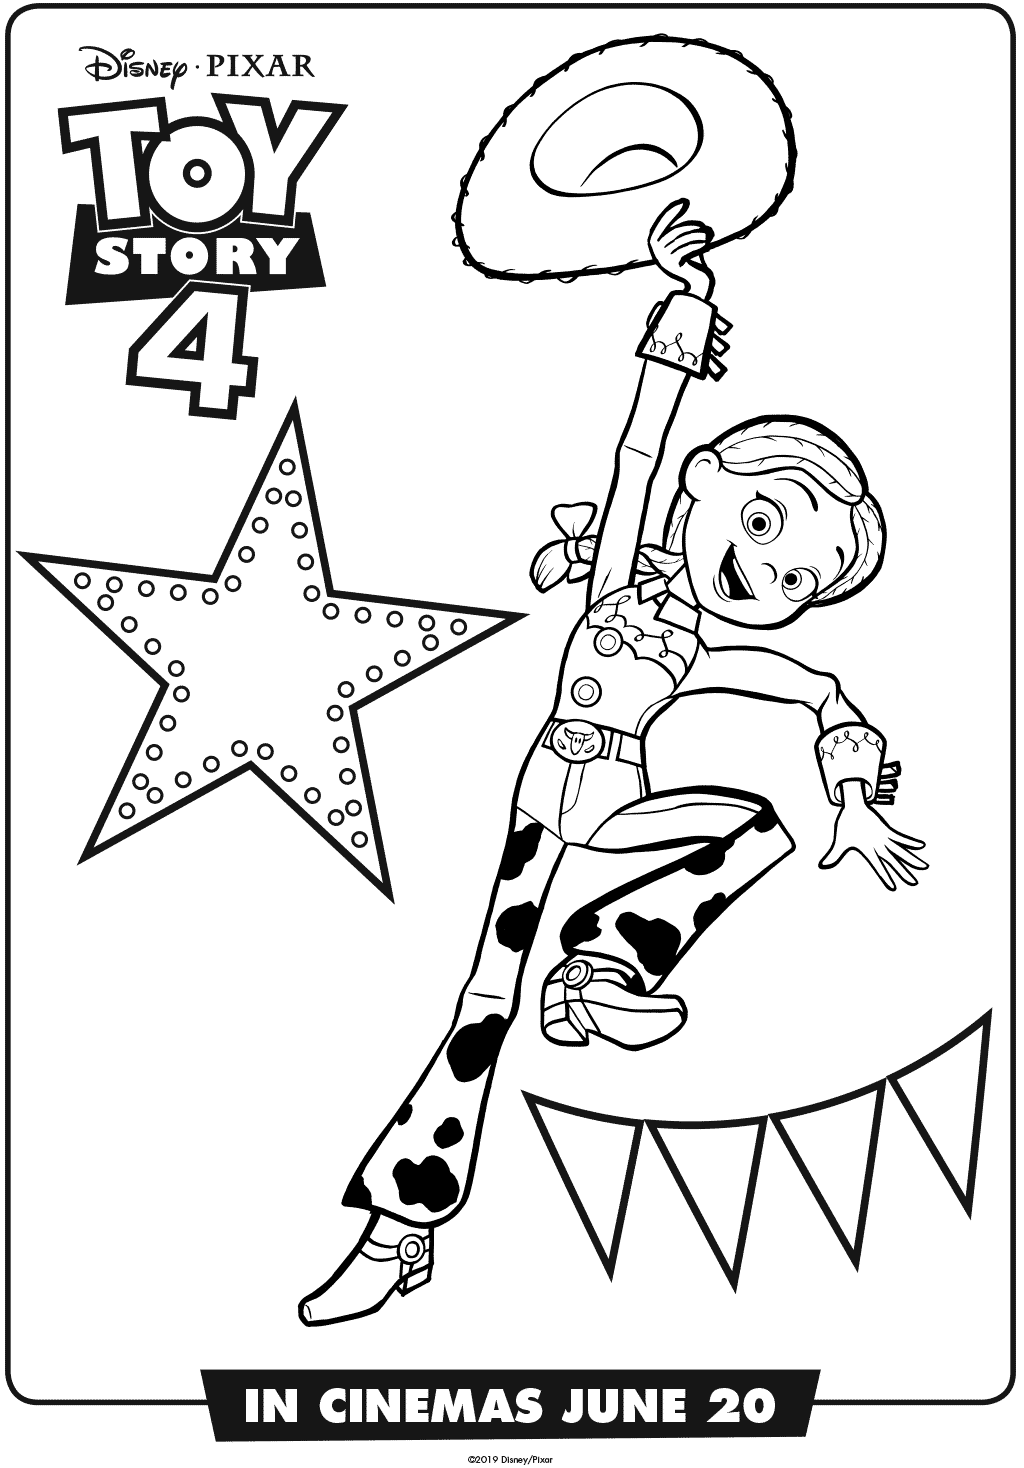 toy story 4 coloring toy story 4 forky coloring pages get coloring pages story 4 toy coloring